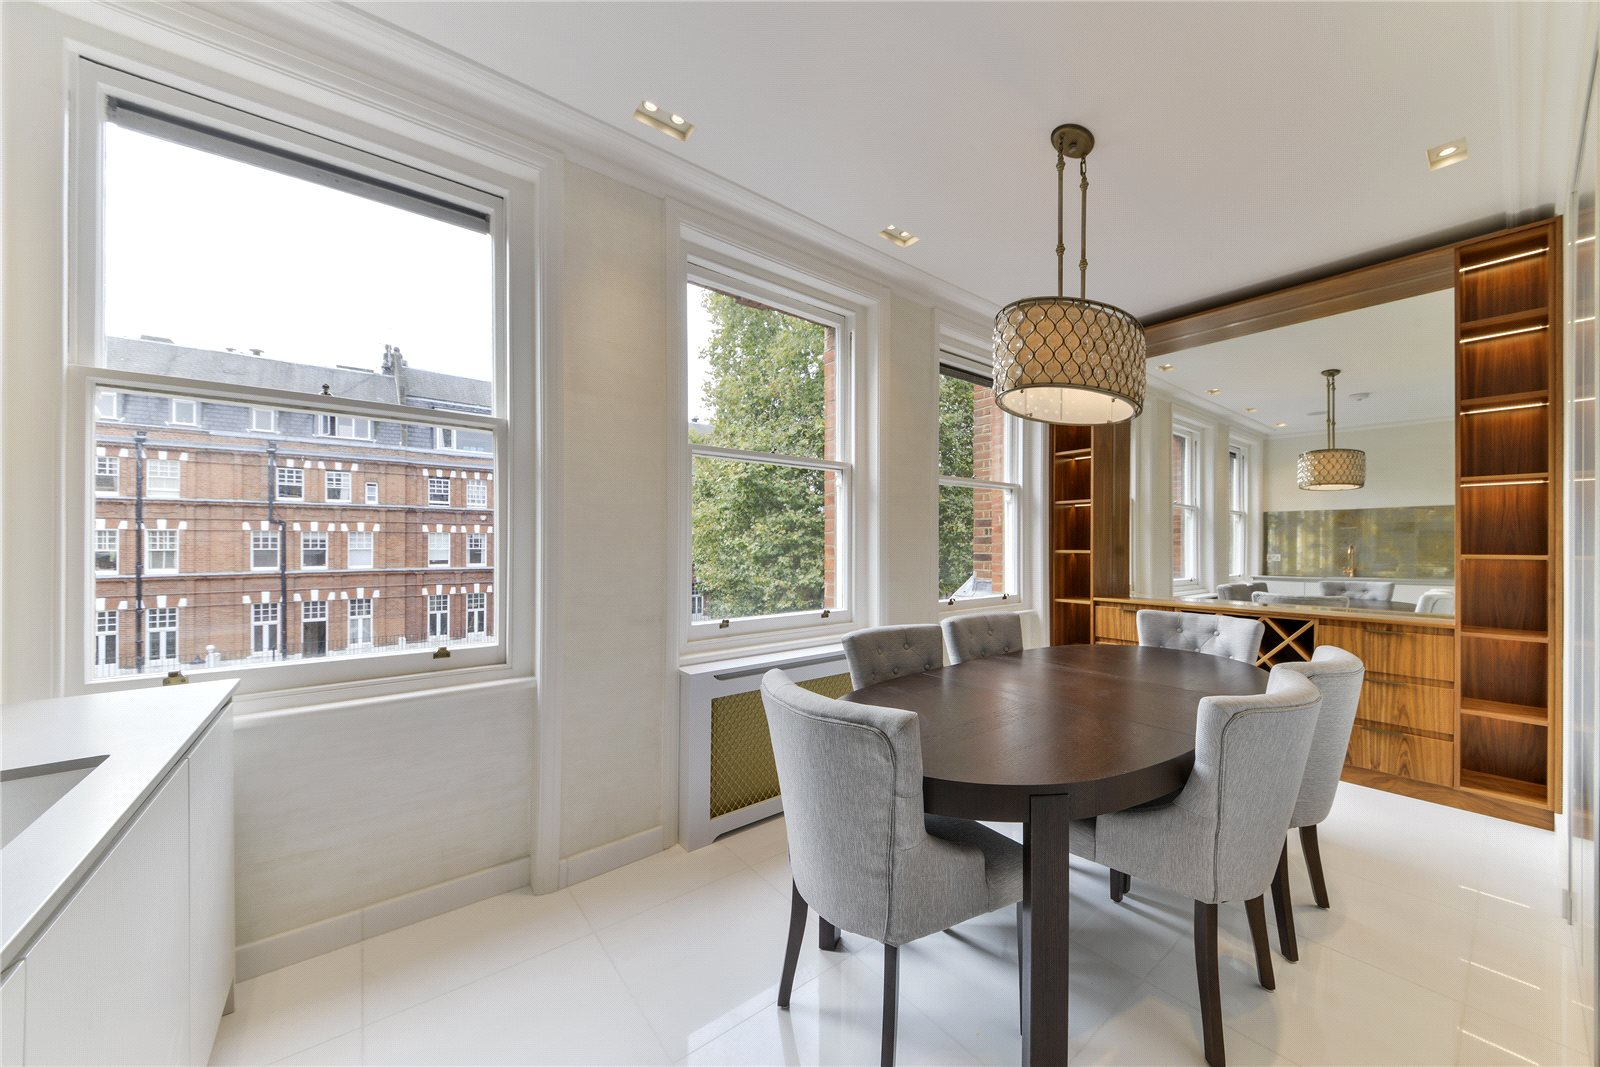 Additional photo for property listing at Cheyne Gardens, London, SW3 London, England